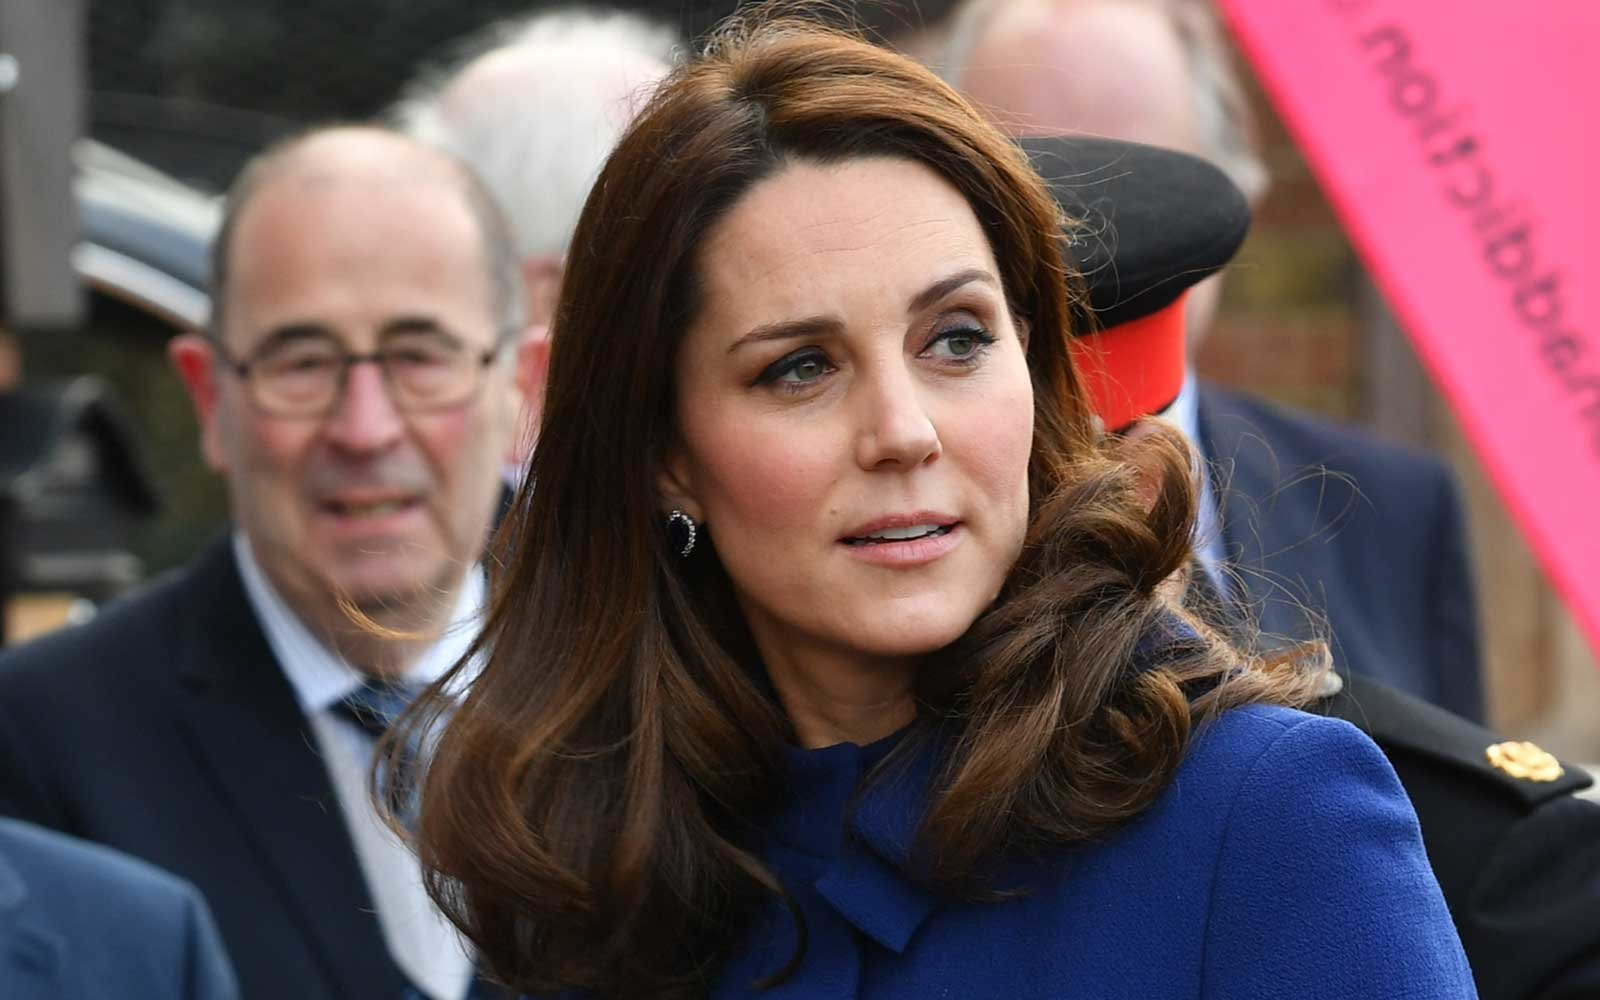 The Duchess of Cambridge arrives to open an Action on Addiction treatment centre in Wickford, Essex